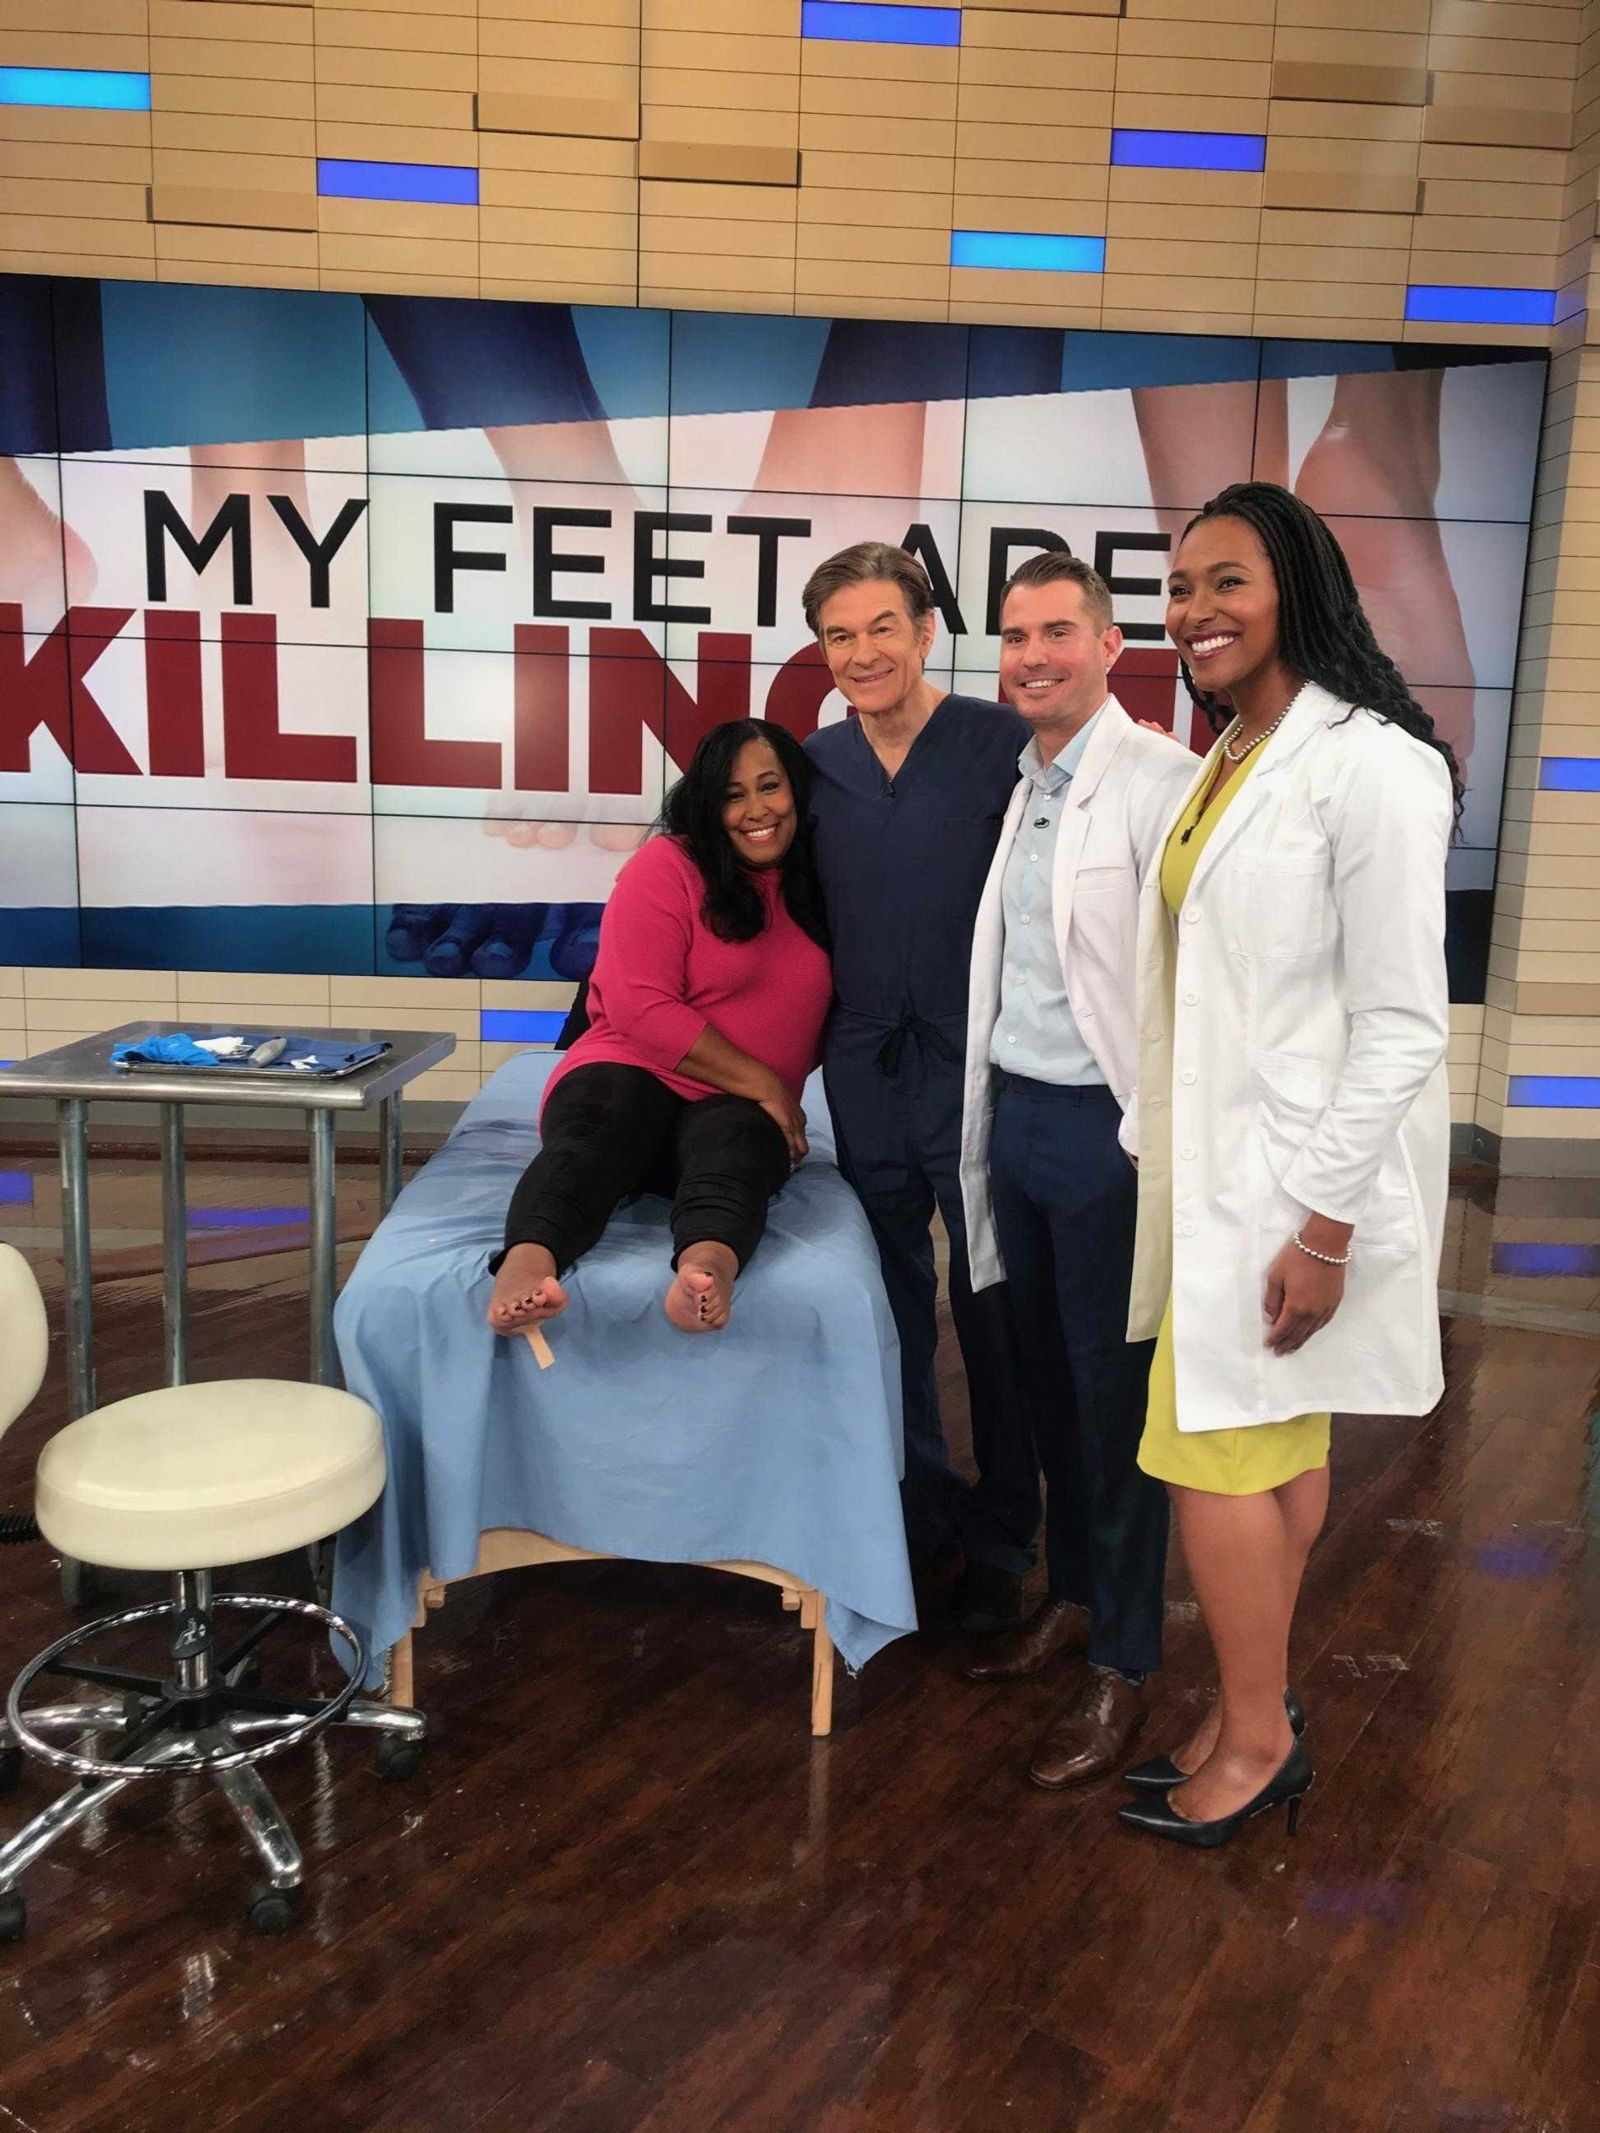 brad schaeffer on the dr. oz show